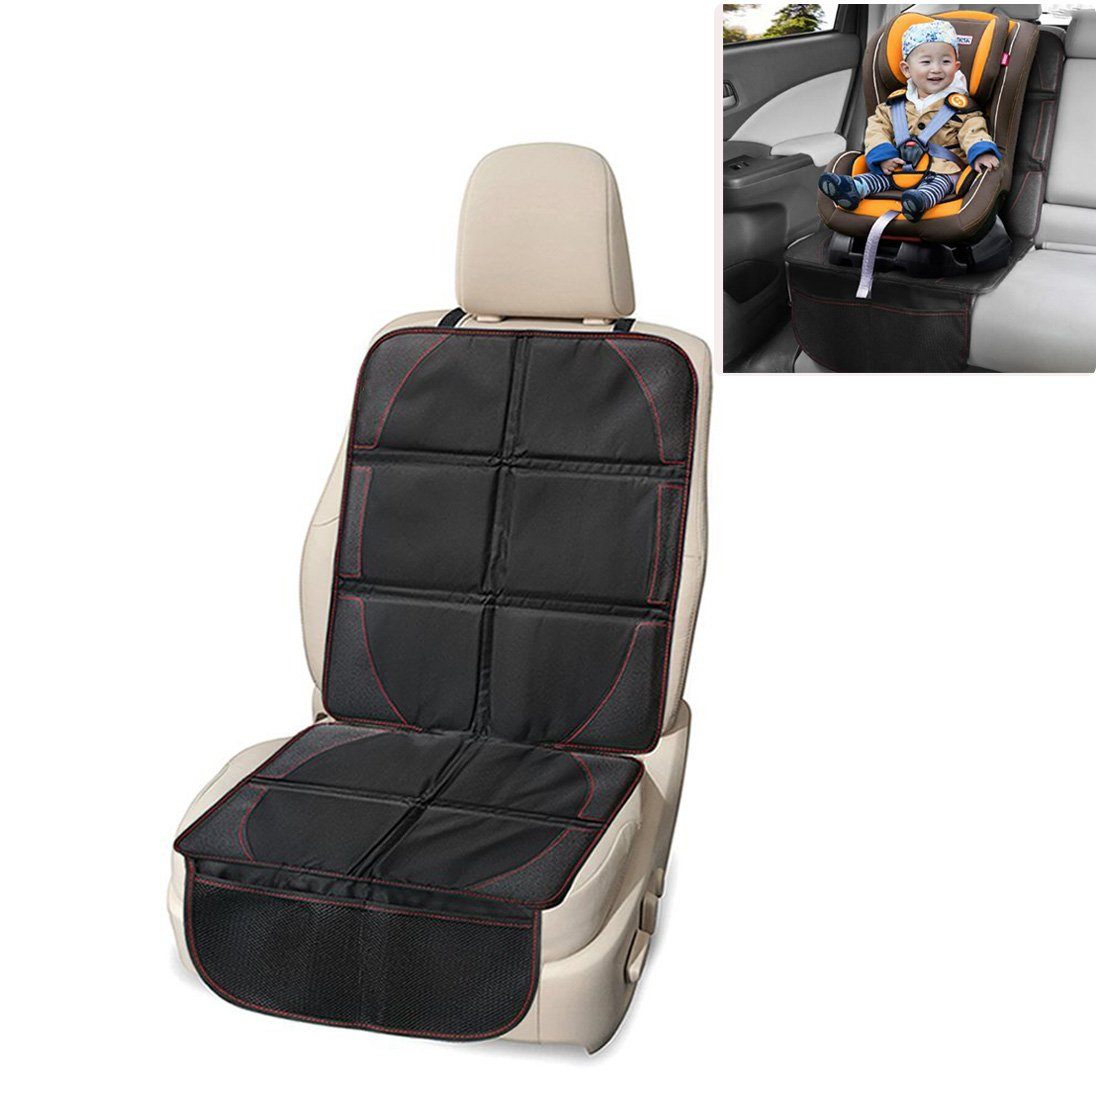 Child Car Seat Protector Waterproof Foldable Car Seat Cover Protector Dog Mat with Thickest Padding for Child & Baby Cars Seats-Universal Fit WCH AUTO ACCESSORIES LIMITED FLROSP02